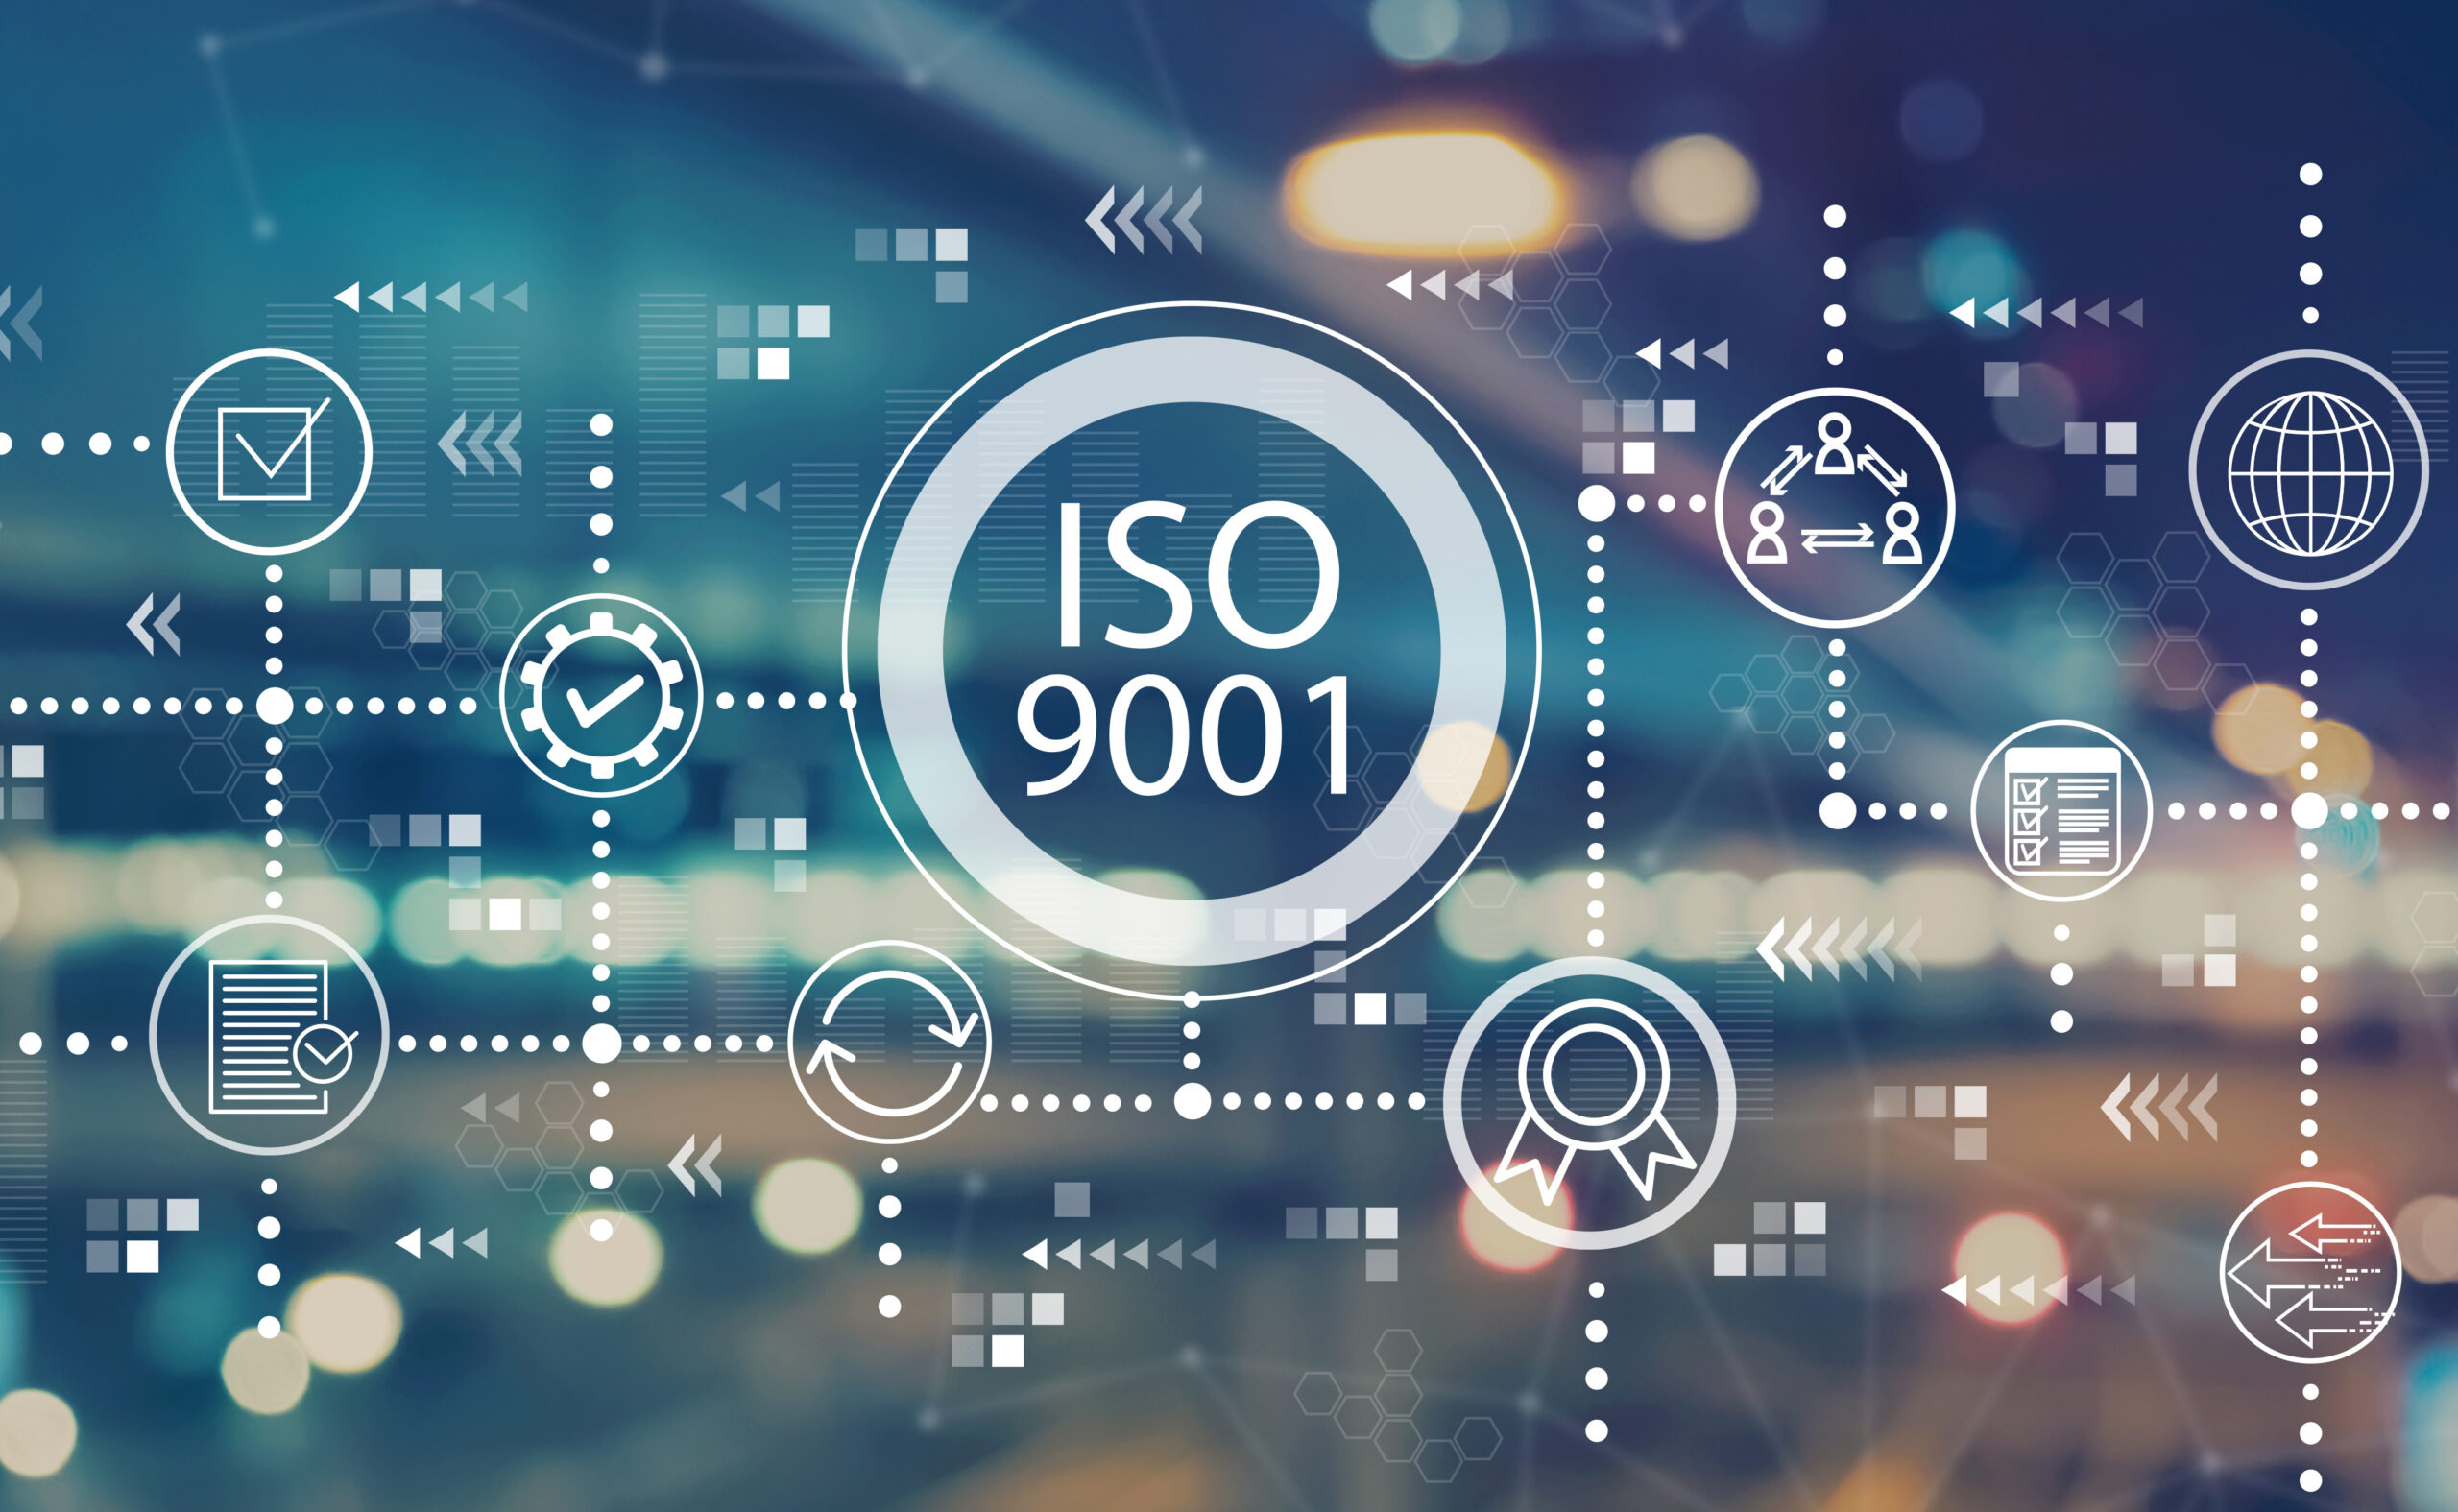 ISO 9001 with blurred city abstract lights background